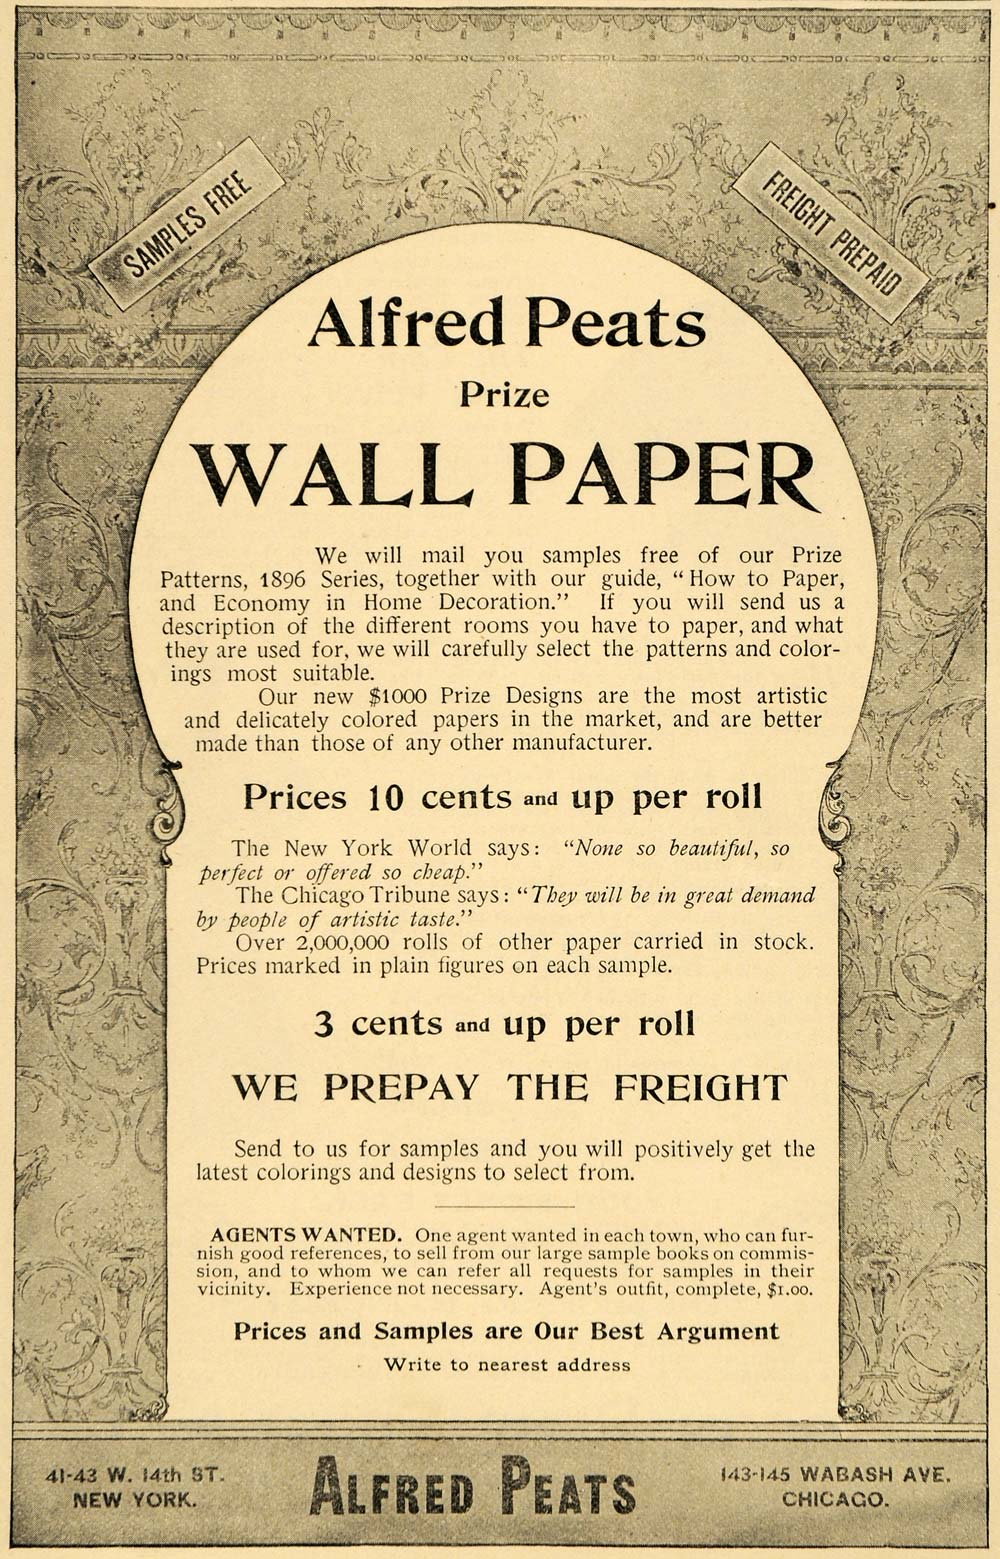 1896 Ad Alfred Peats Prize Wall Paper Wabash Avenue - ORIGINAL ADVERTISING LHJ4